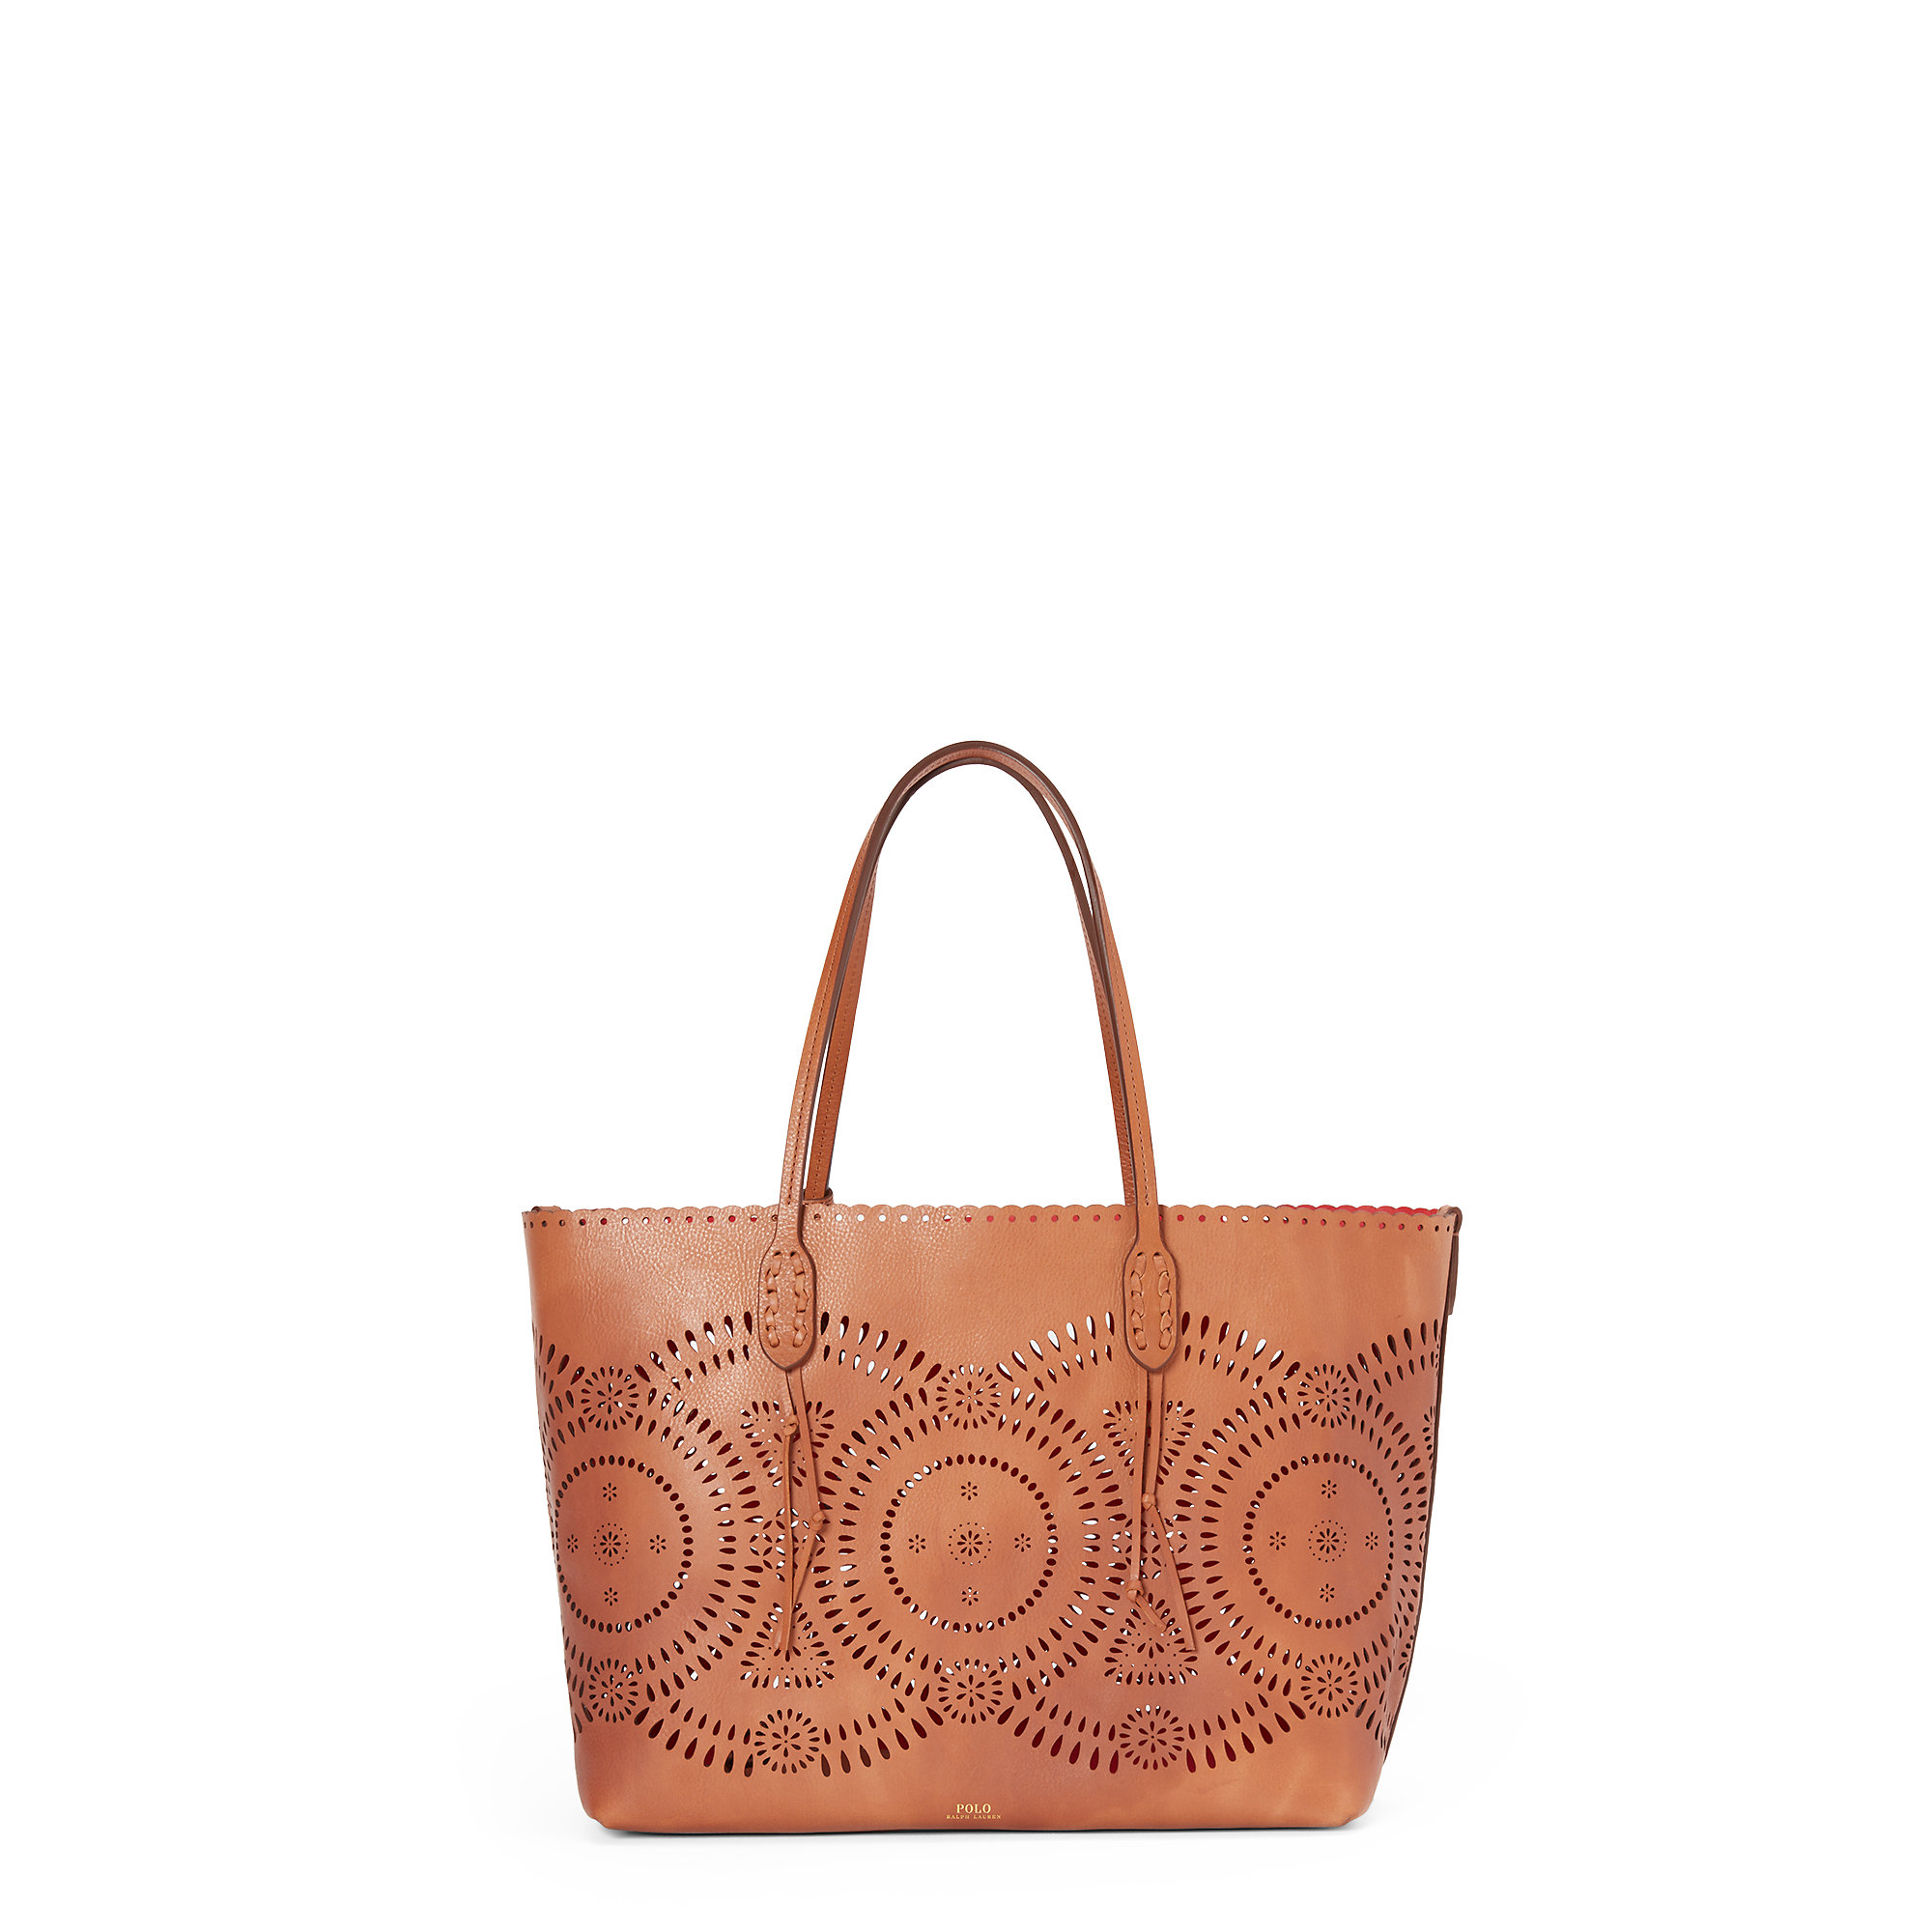 099979ad70c Lyst - Polo Ralph Lauren Laser-cut Leather Tote